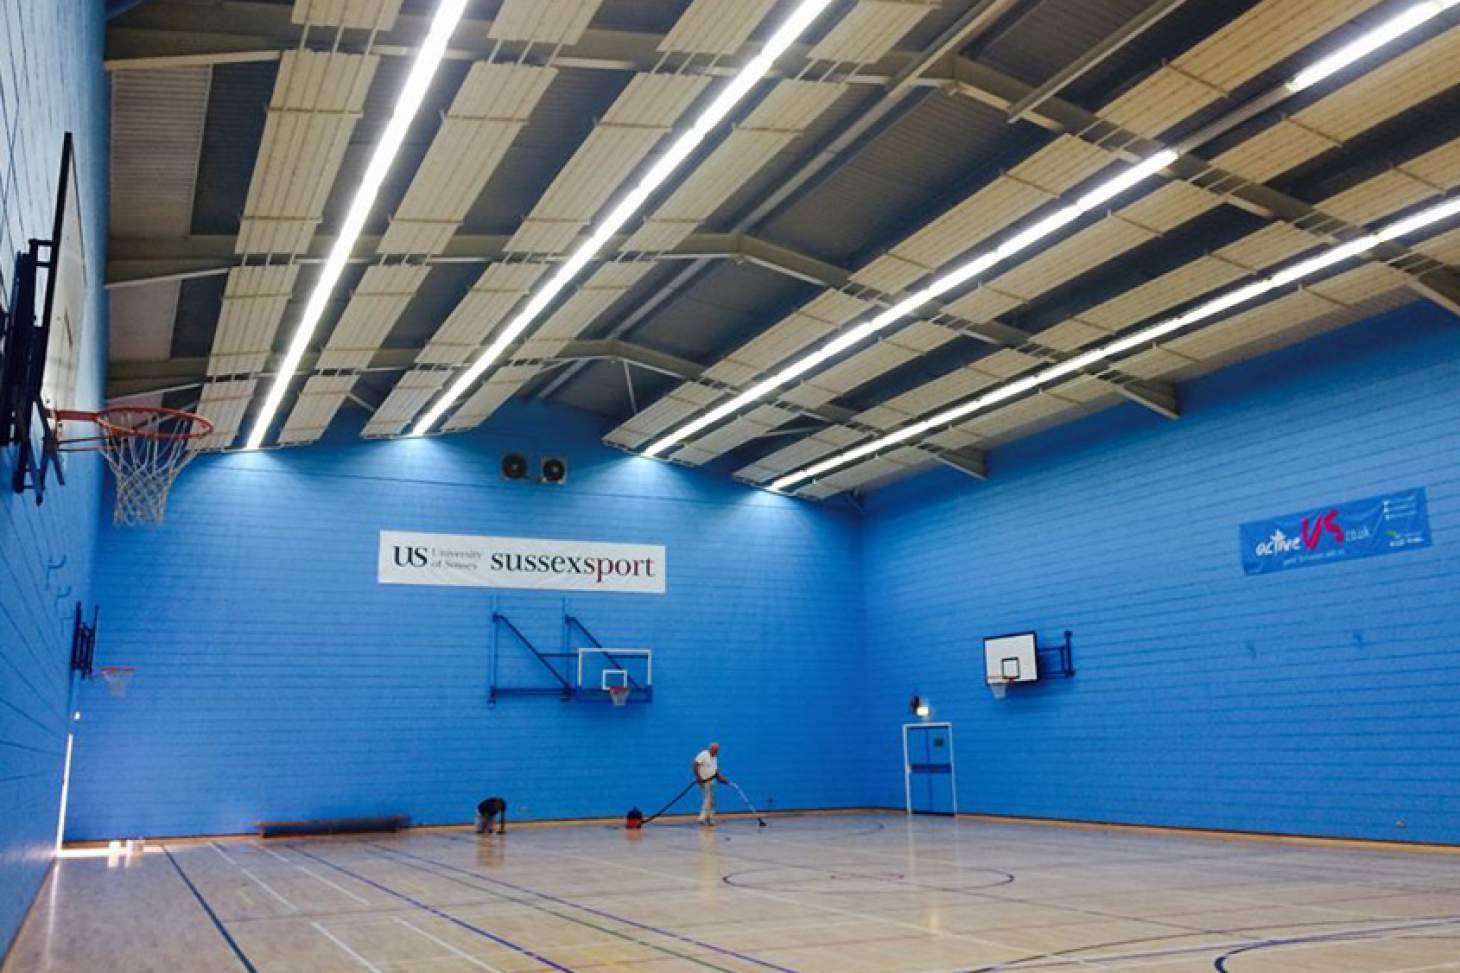 University Of Sussex Sport Centre Nets | Sports hall cricket facilities